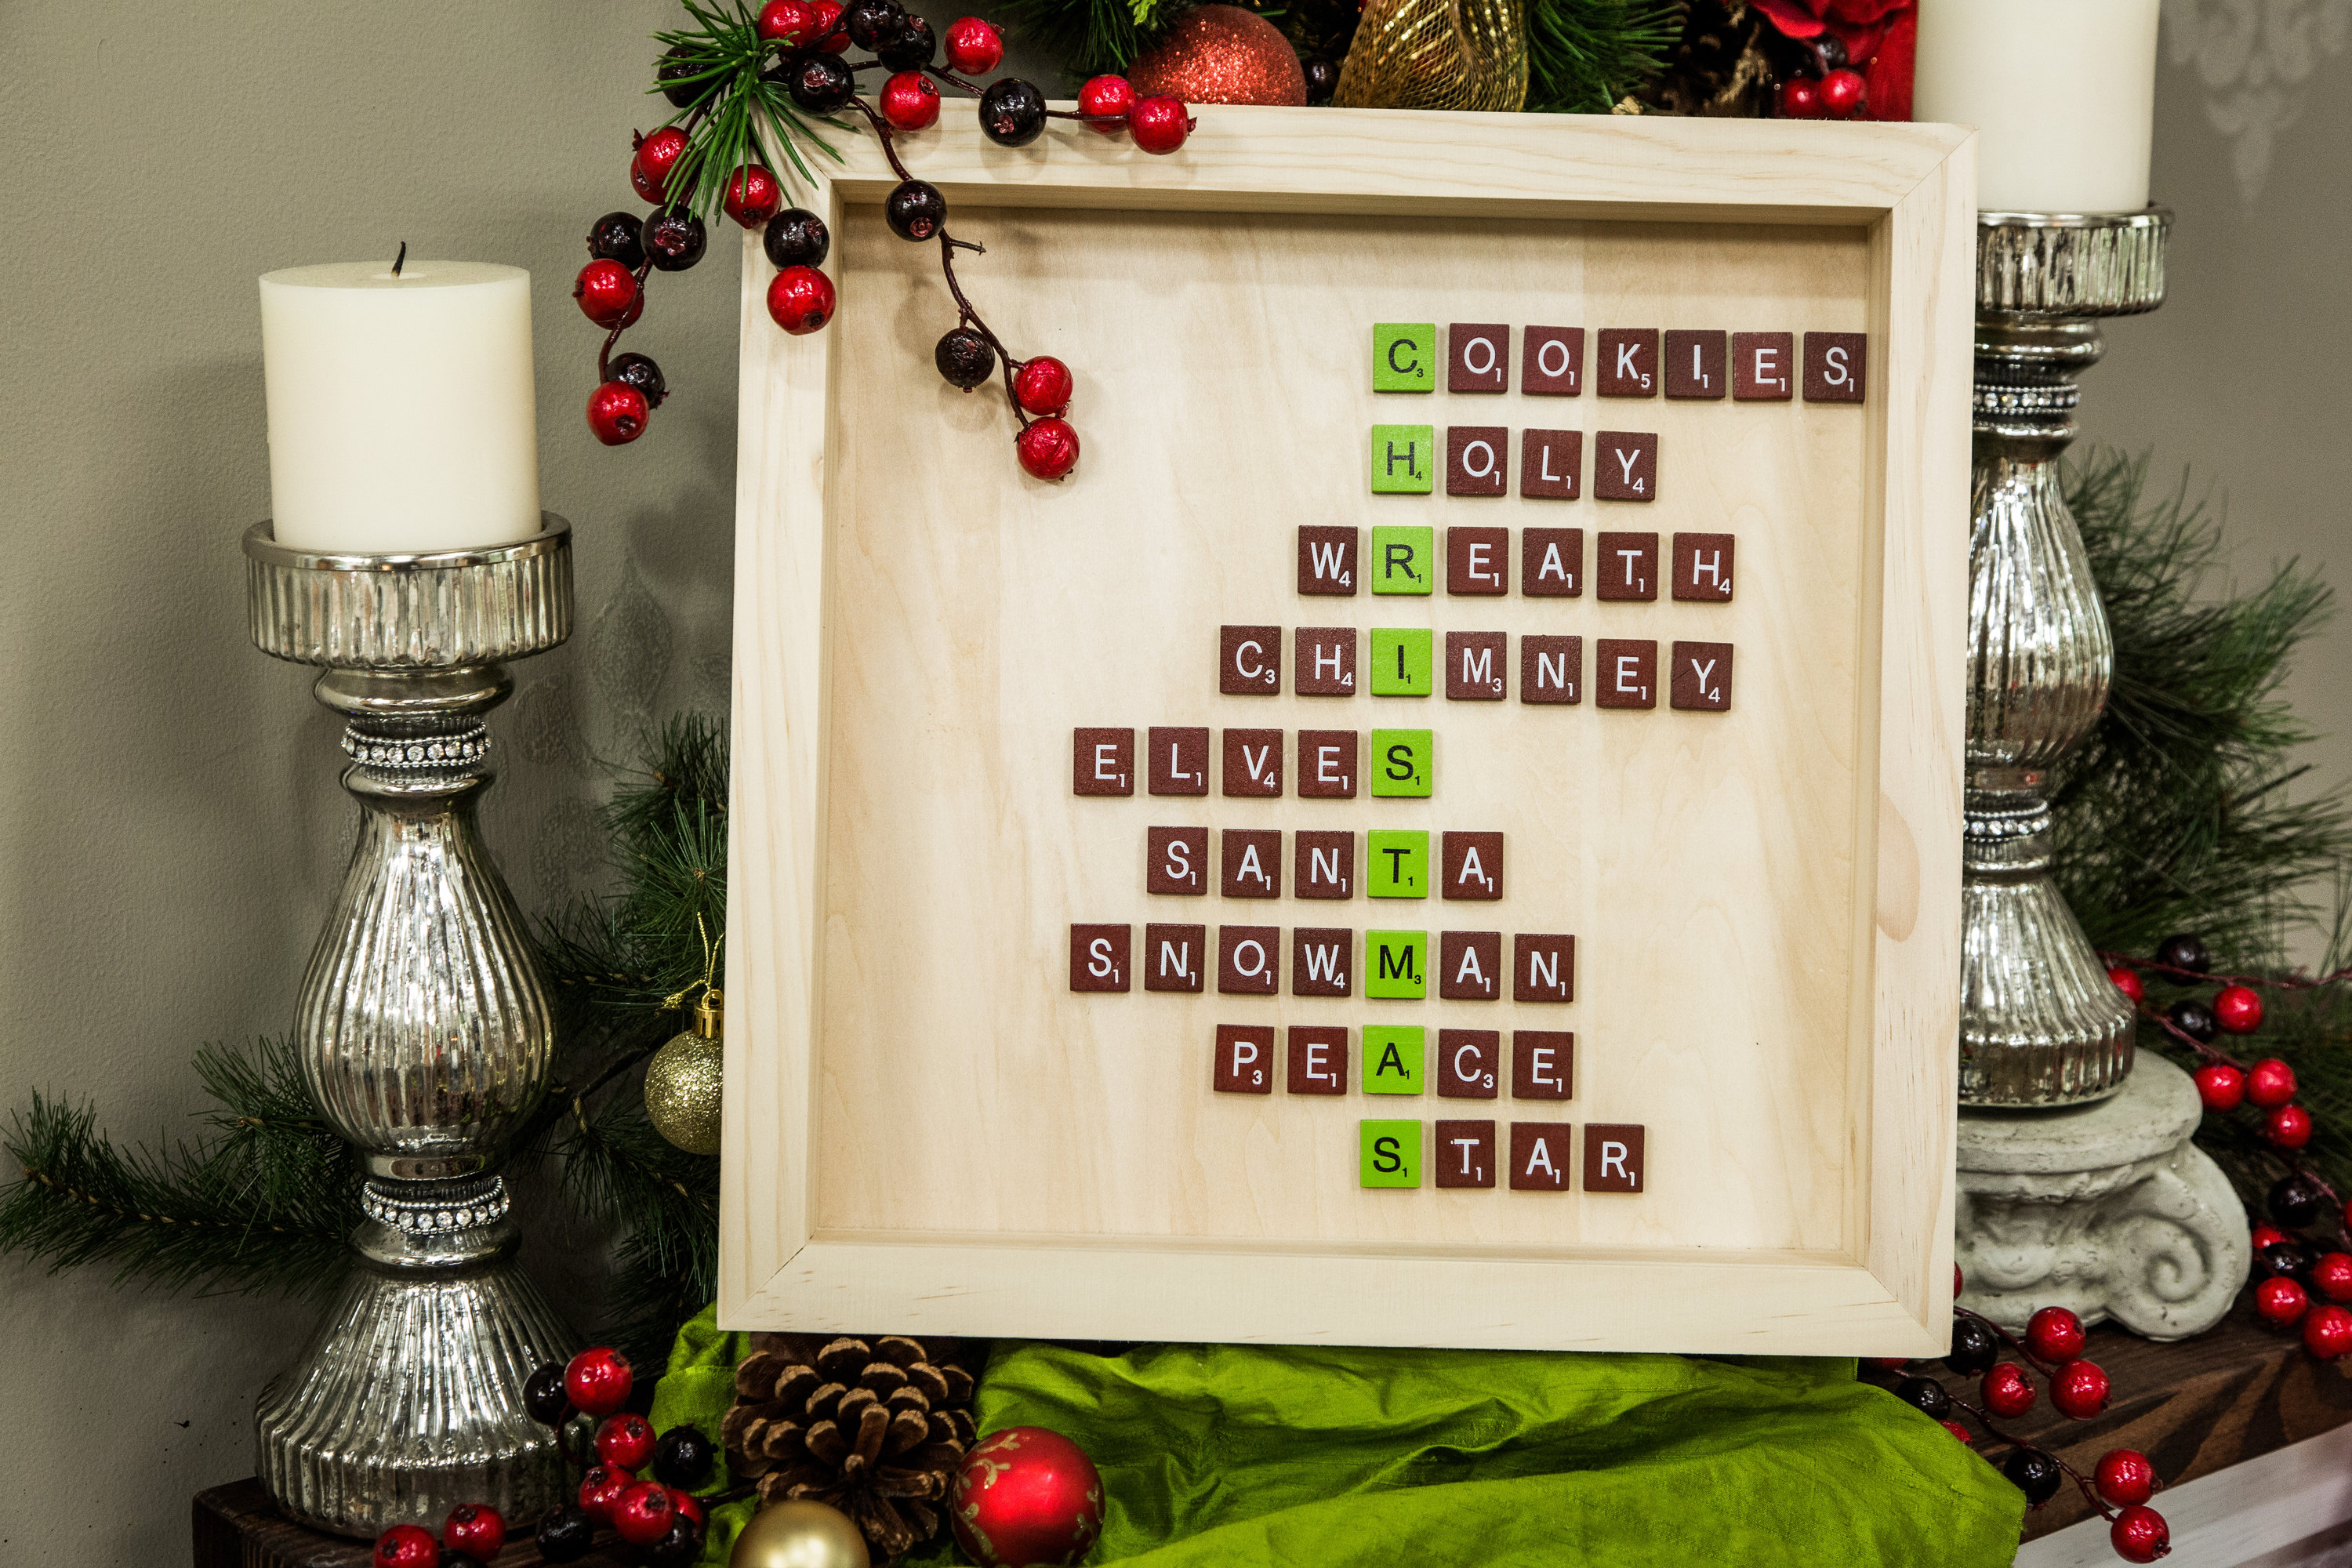 Diy Scrabble Art How To Hallmark Channel It Was So Simple I Also